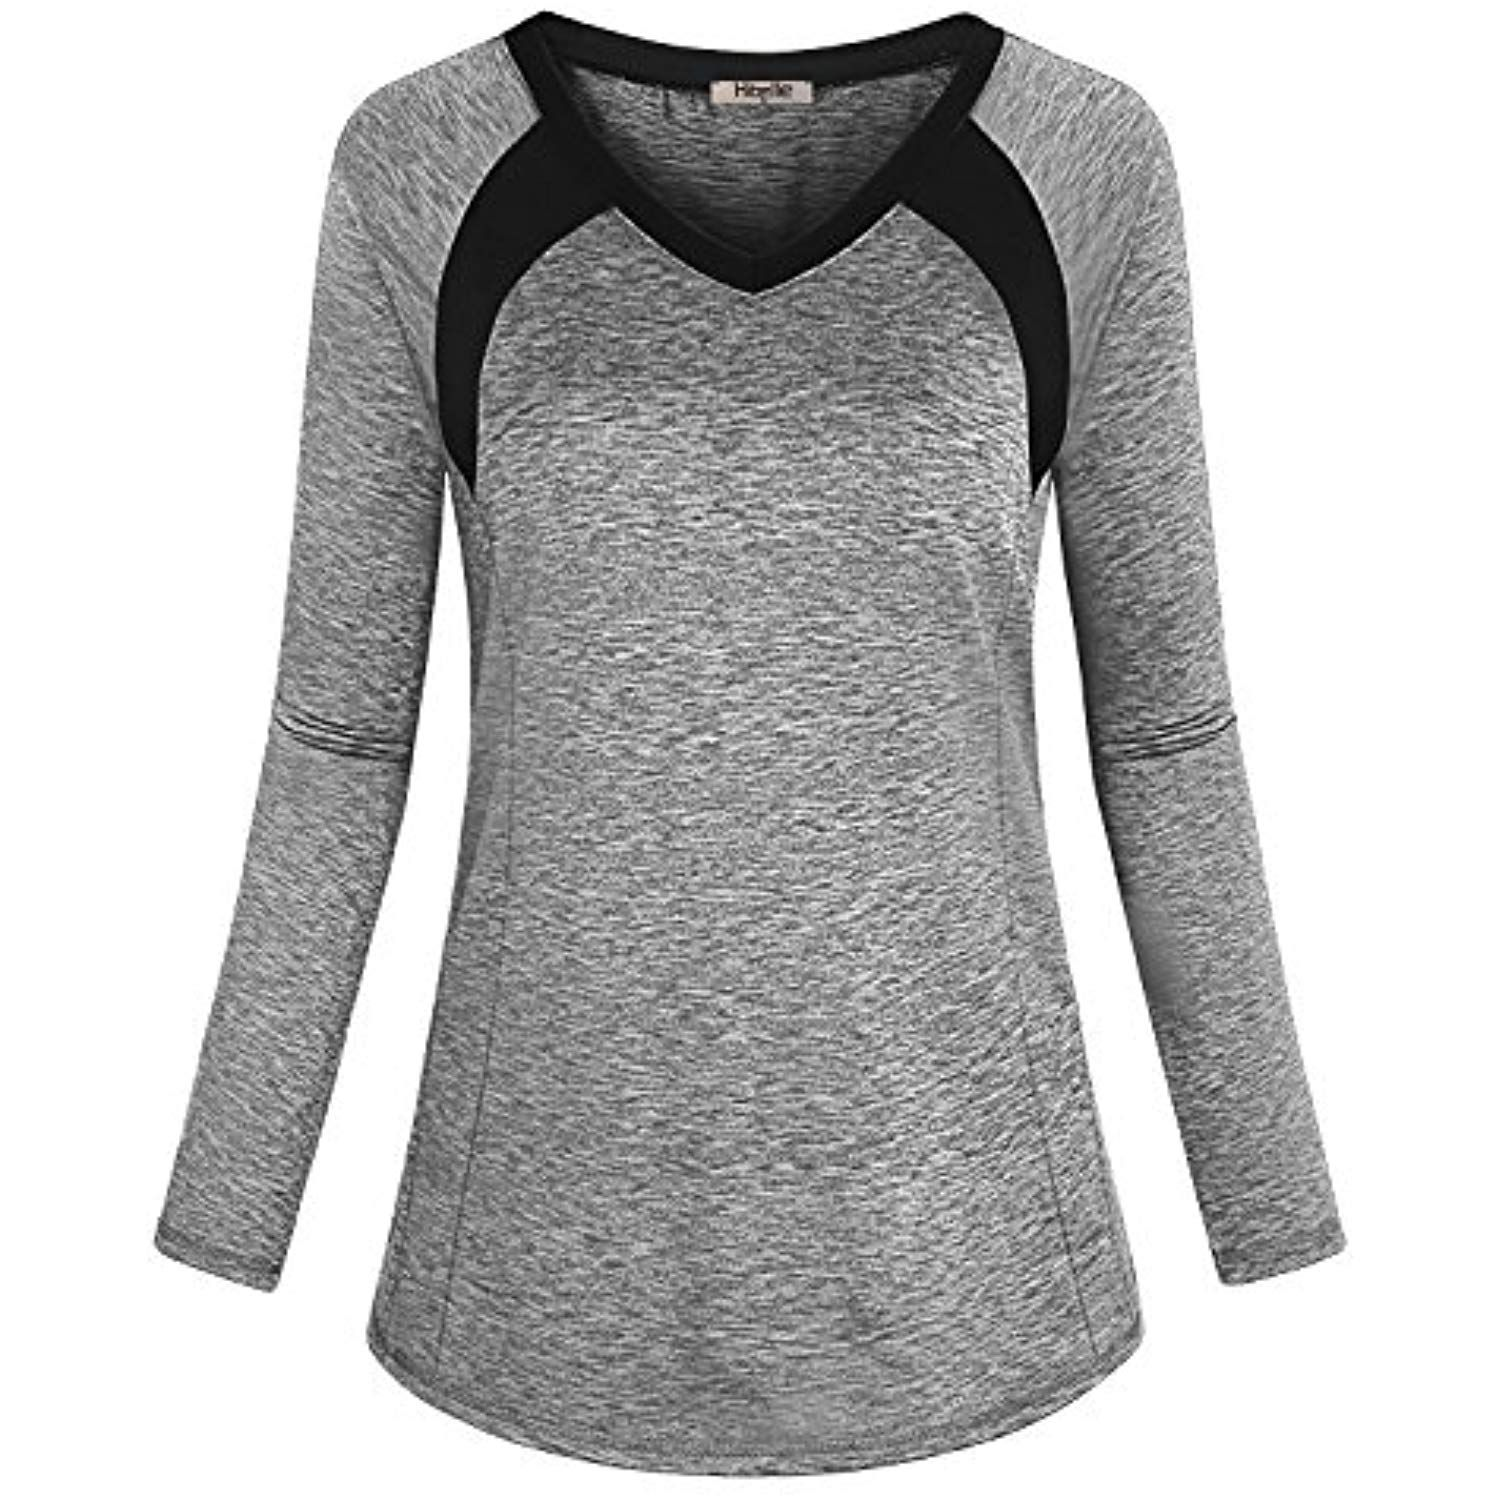 Hibelle Women s Long Sleeve Activewear Yoga Running Workout T-Shirt Tops      Check this awesome product by going to the link at the image. 653ae7cf4